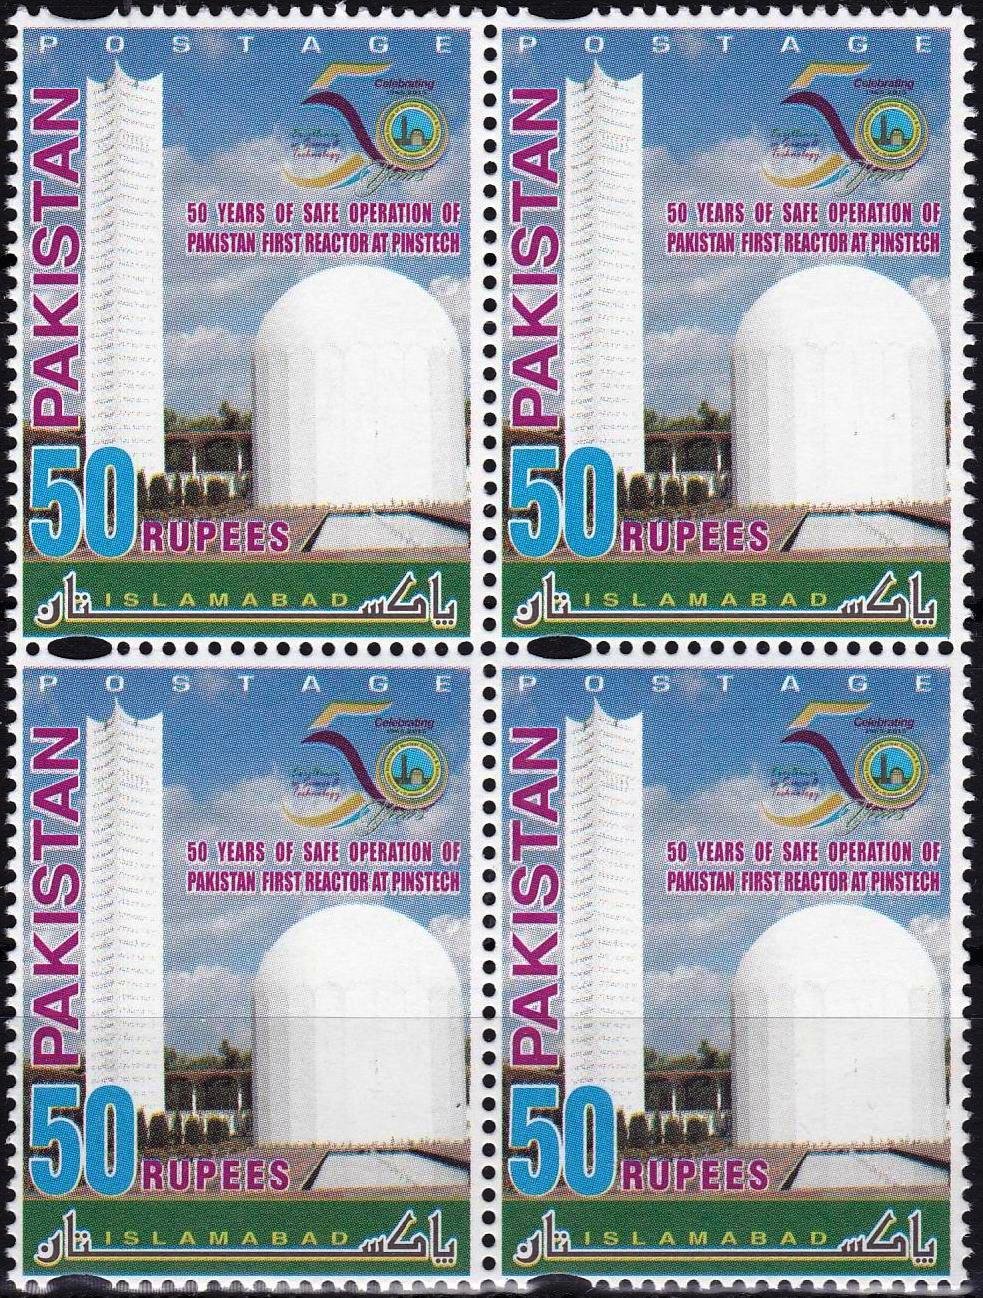 Pakistan Stamps 2016 50 Years Of Pakistans First Atomic Reactor